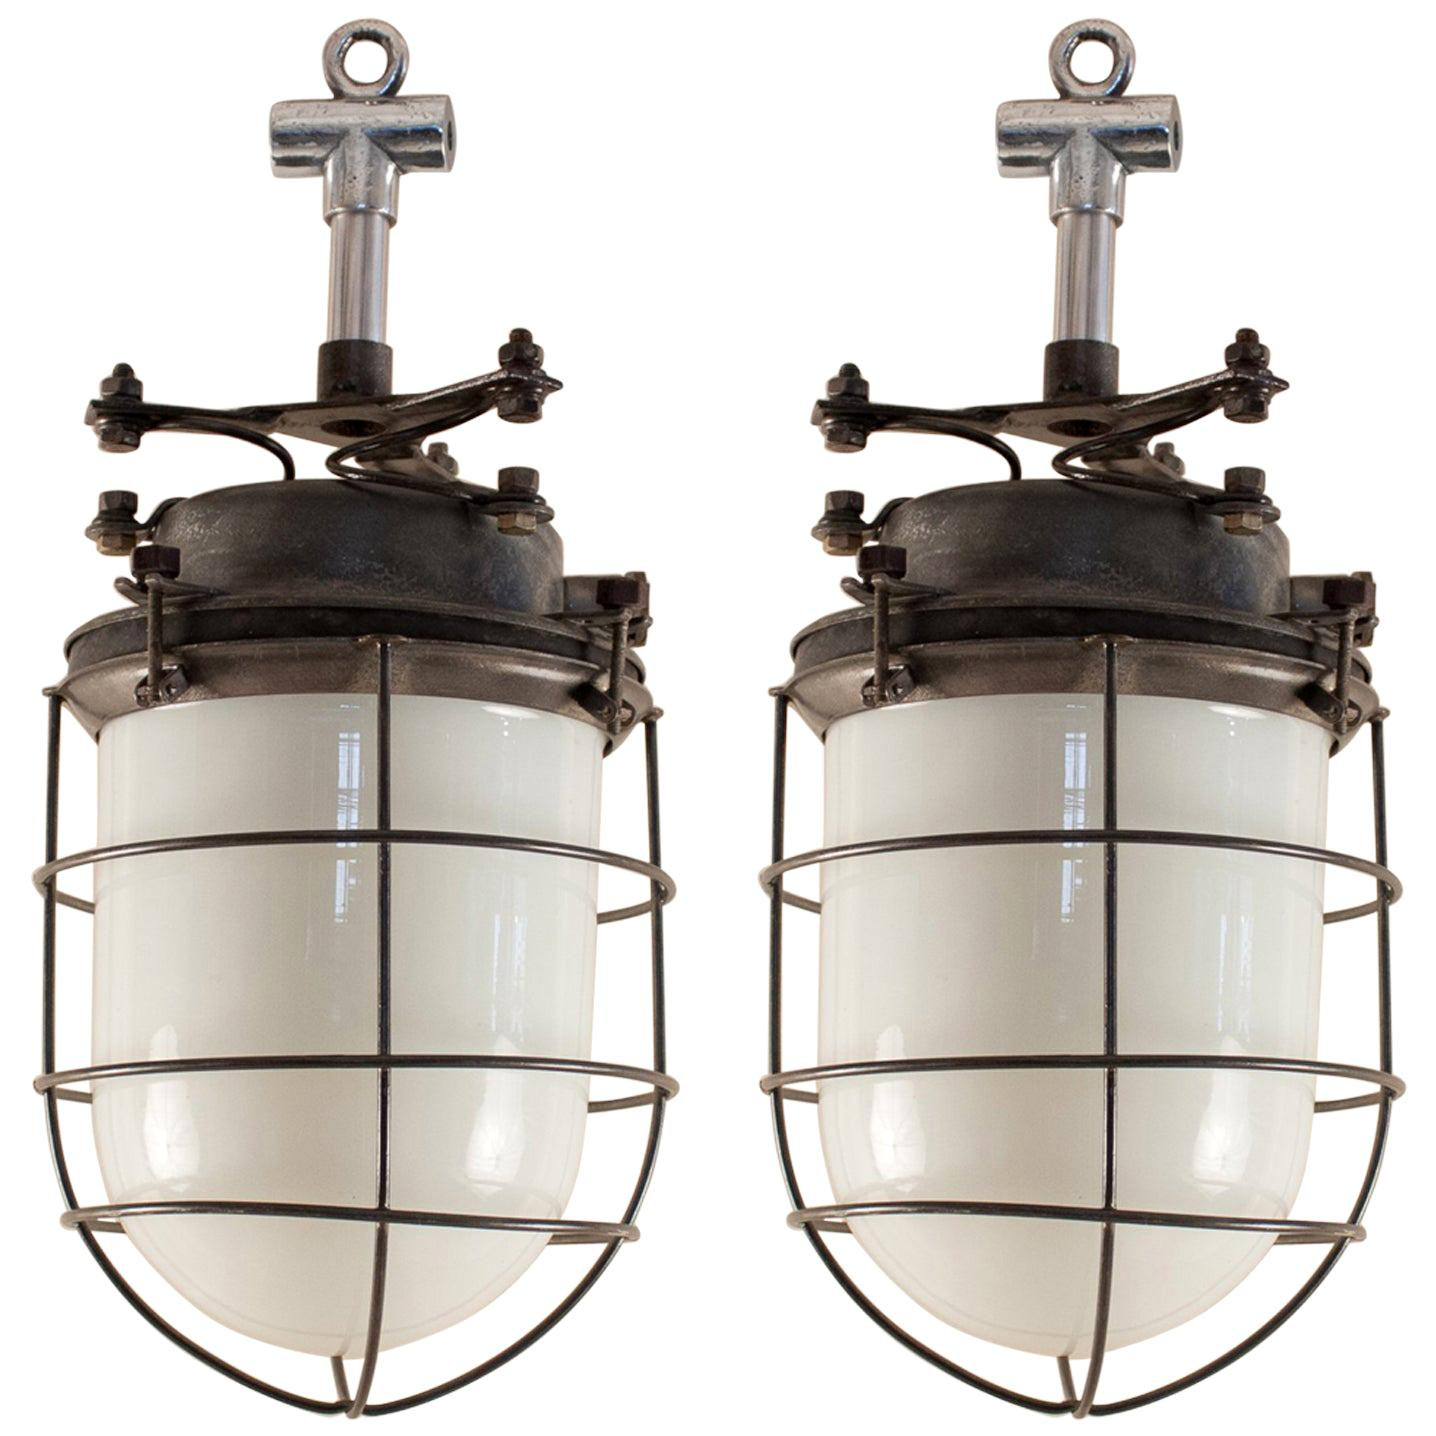 Pair of Nautical Industrial Milk Glass and Steel Caged Pendant Lights